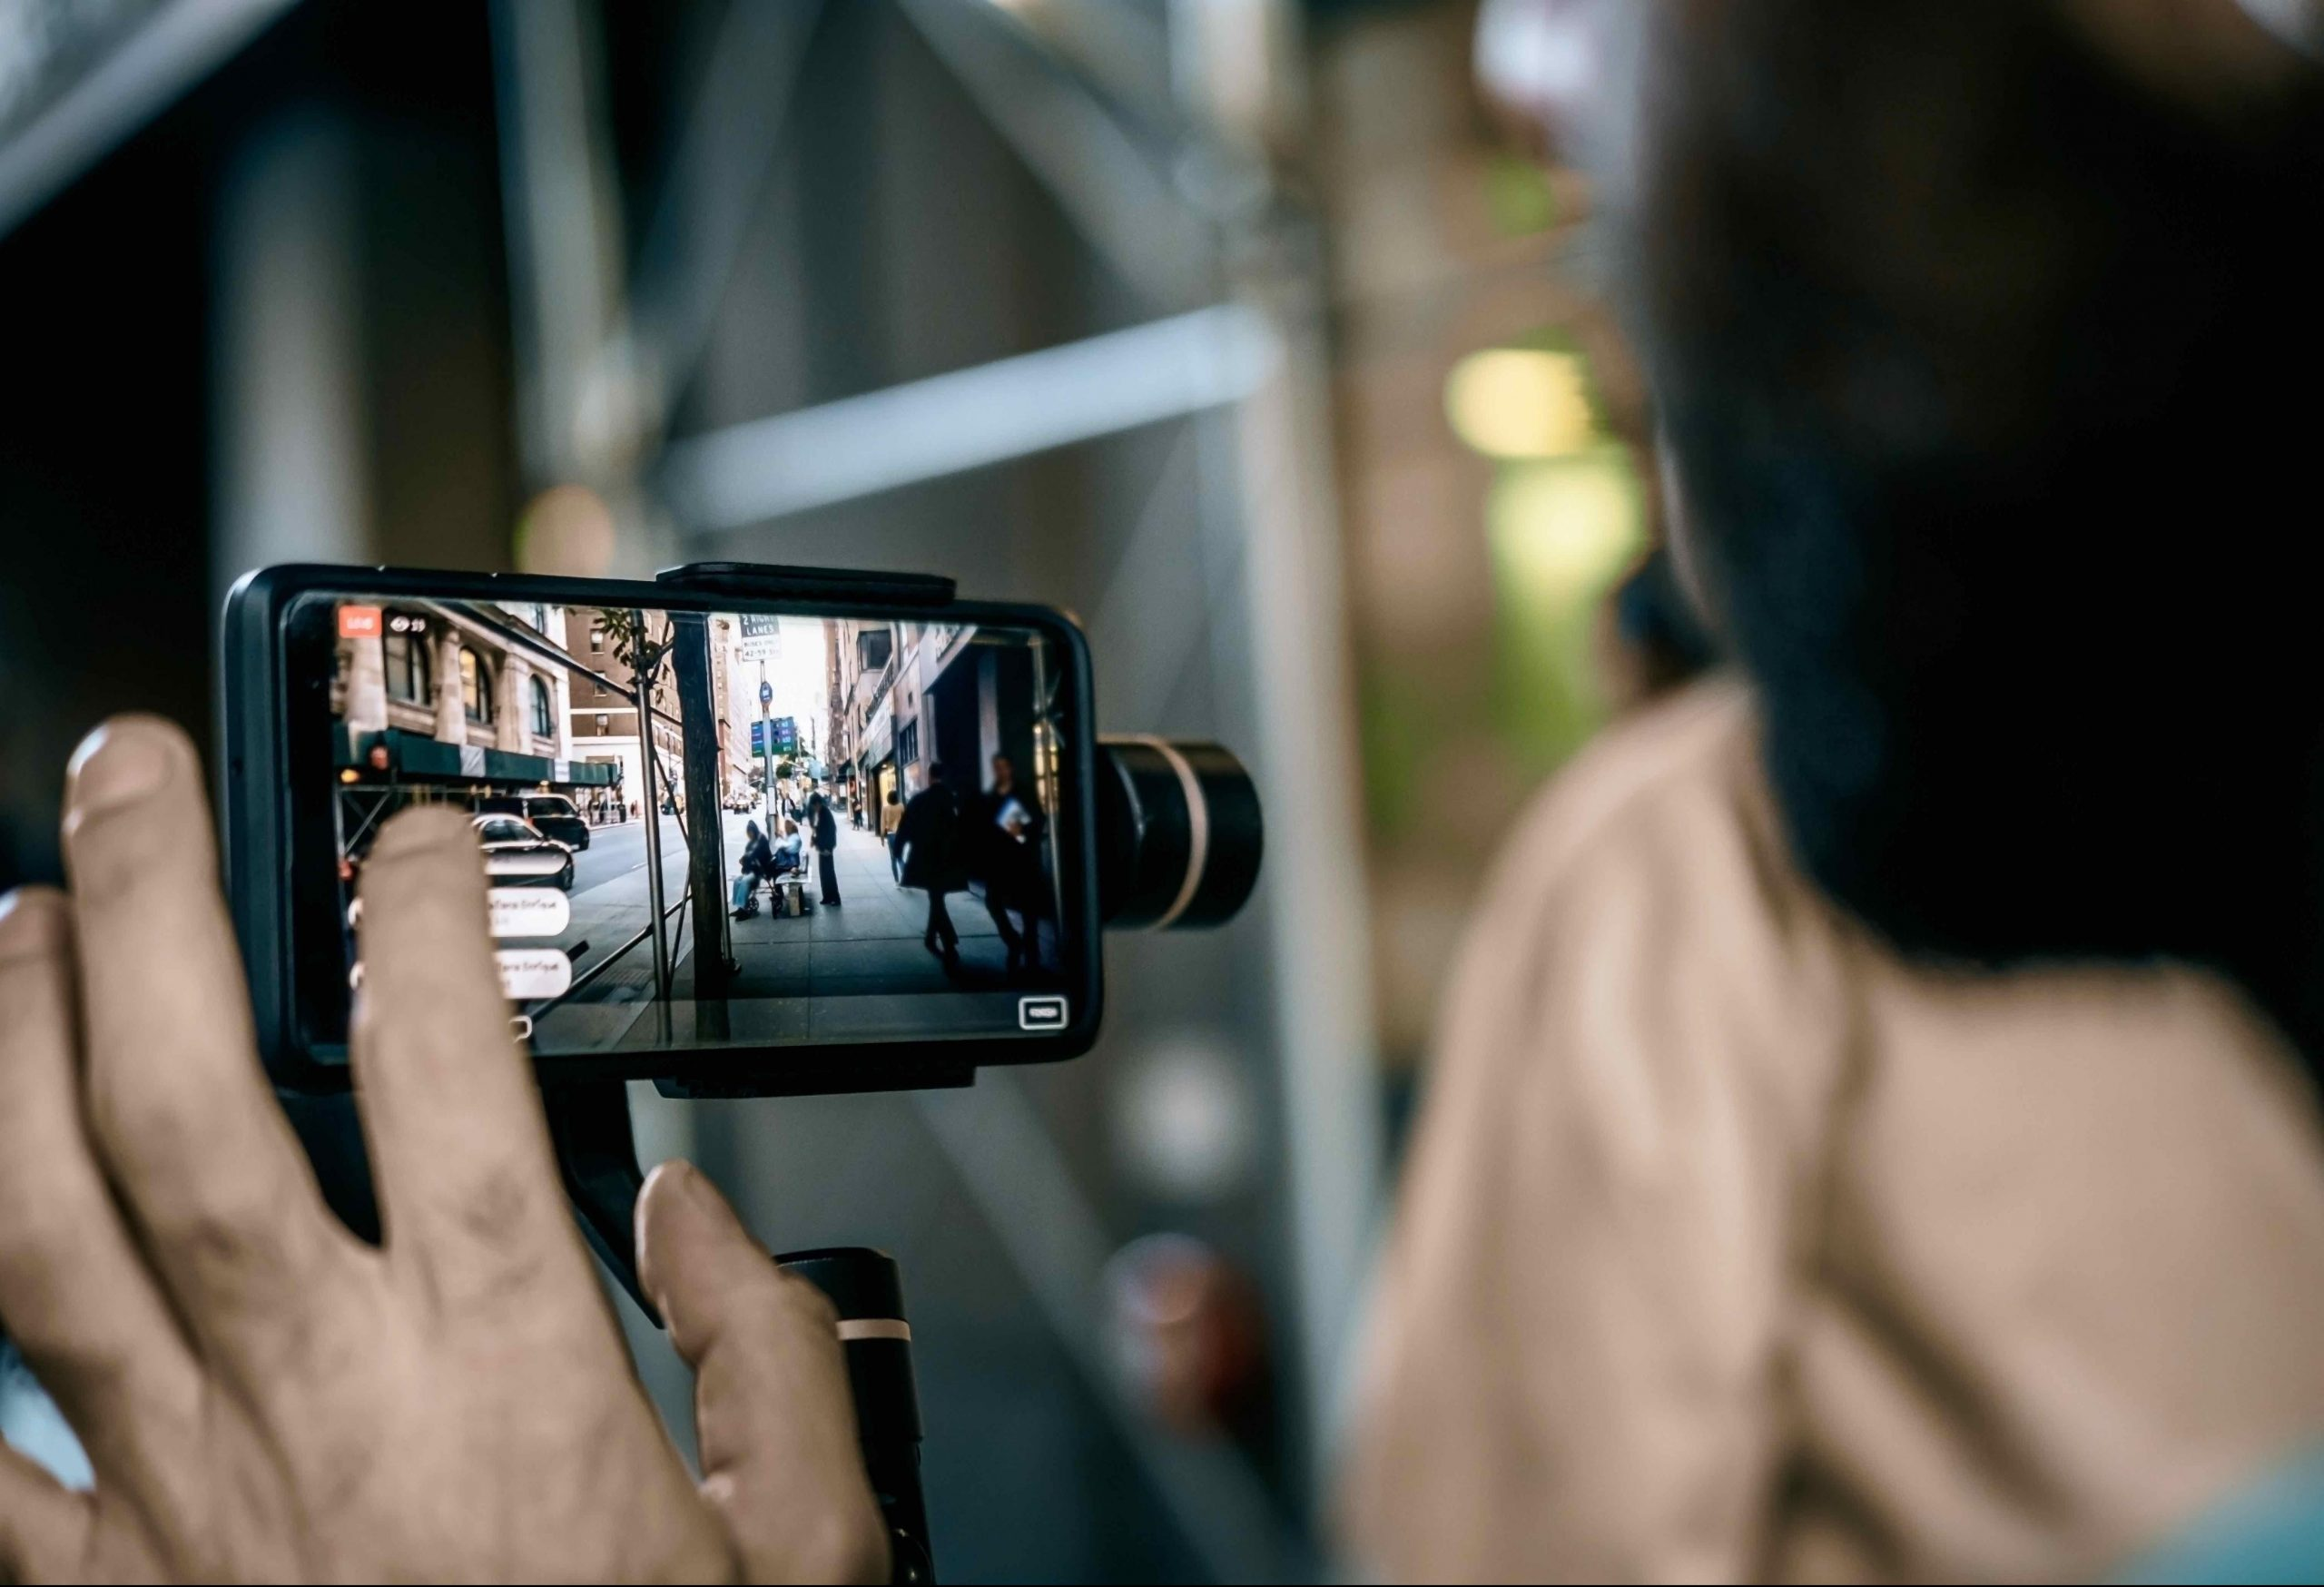 Are smartphones OK for business video?